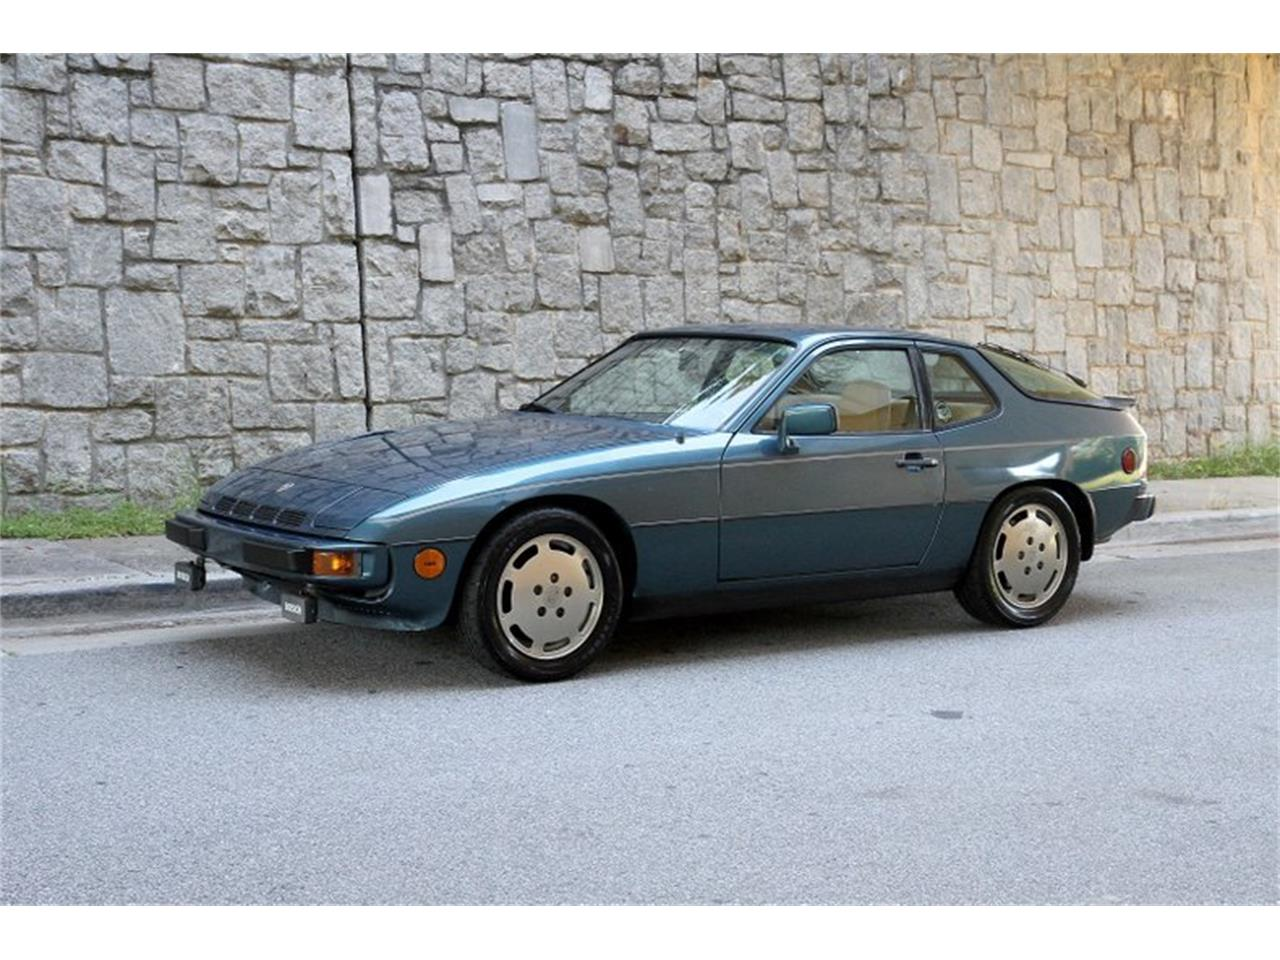 Large Picture of 1980 Porsche 924 located in Georgia Offered by Motorcar Studio - Q3PE